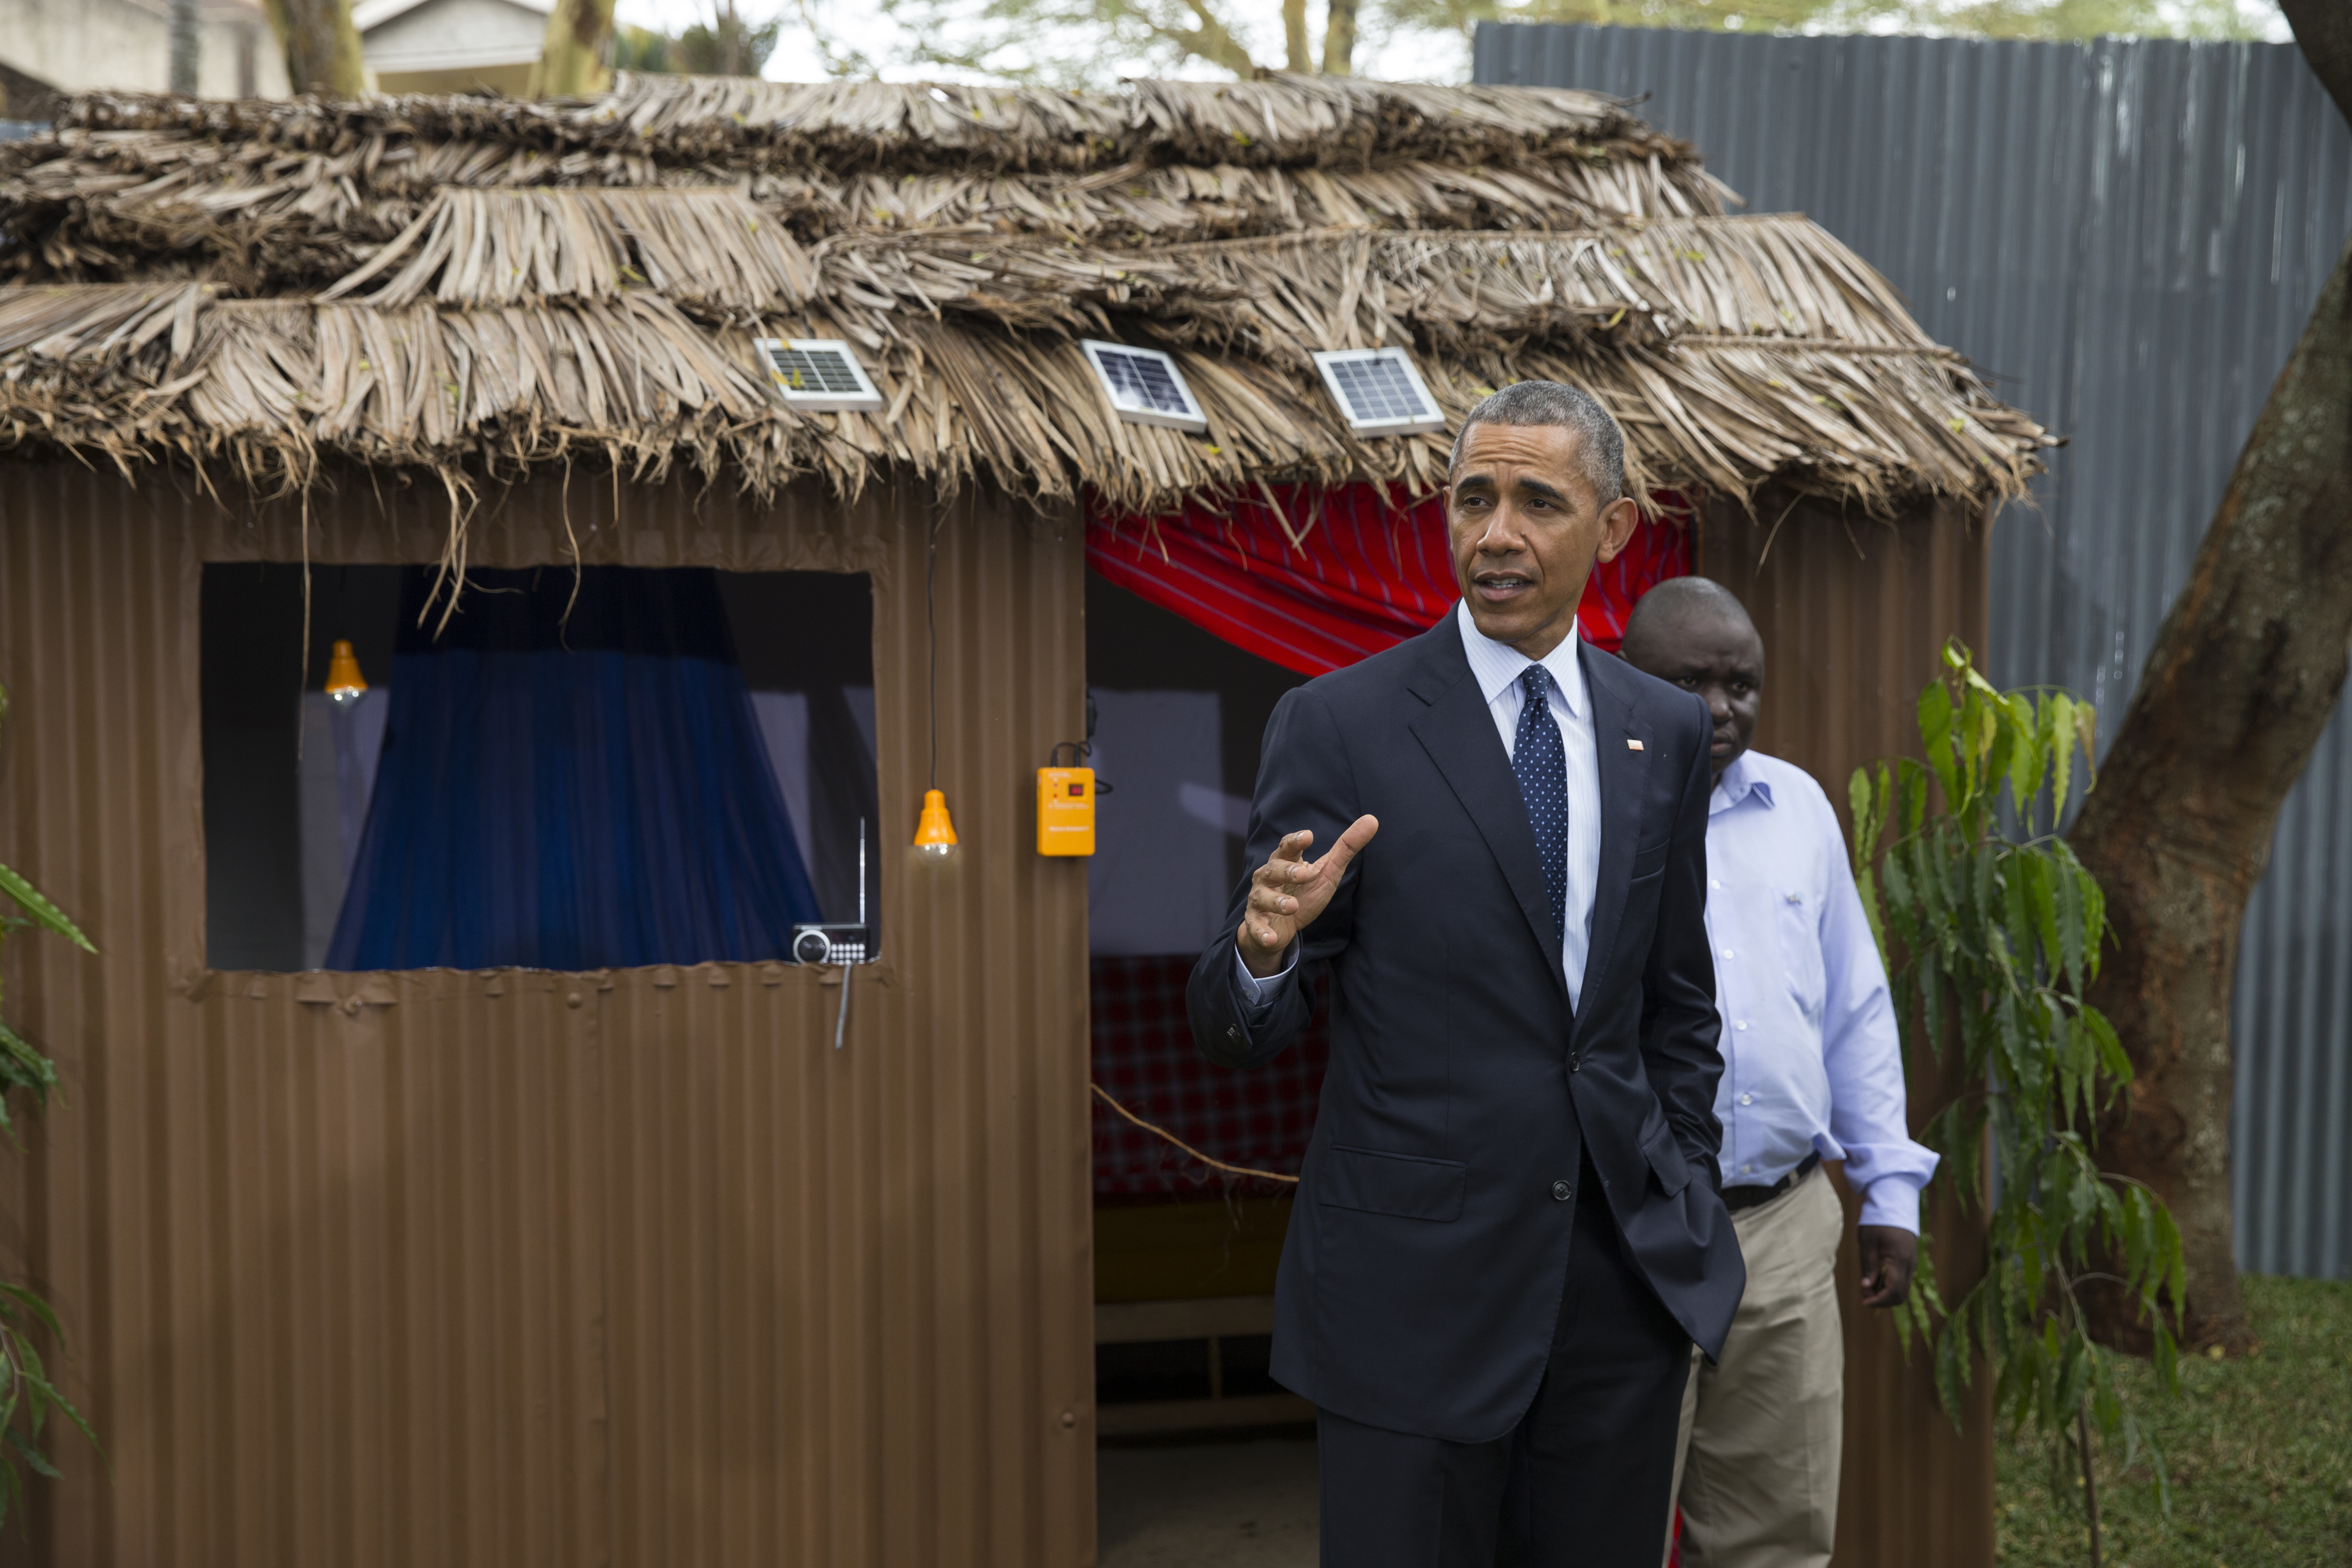 Obama in Kenya: 'Africa is on the move' - The Blade